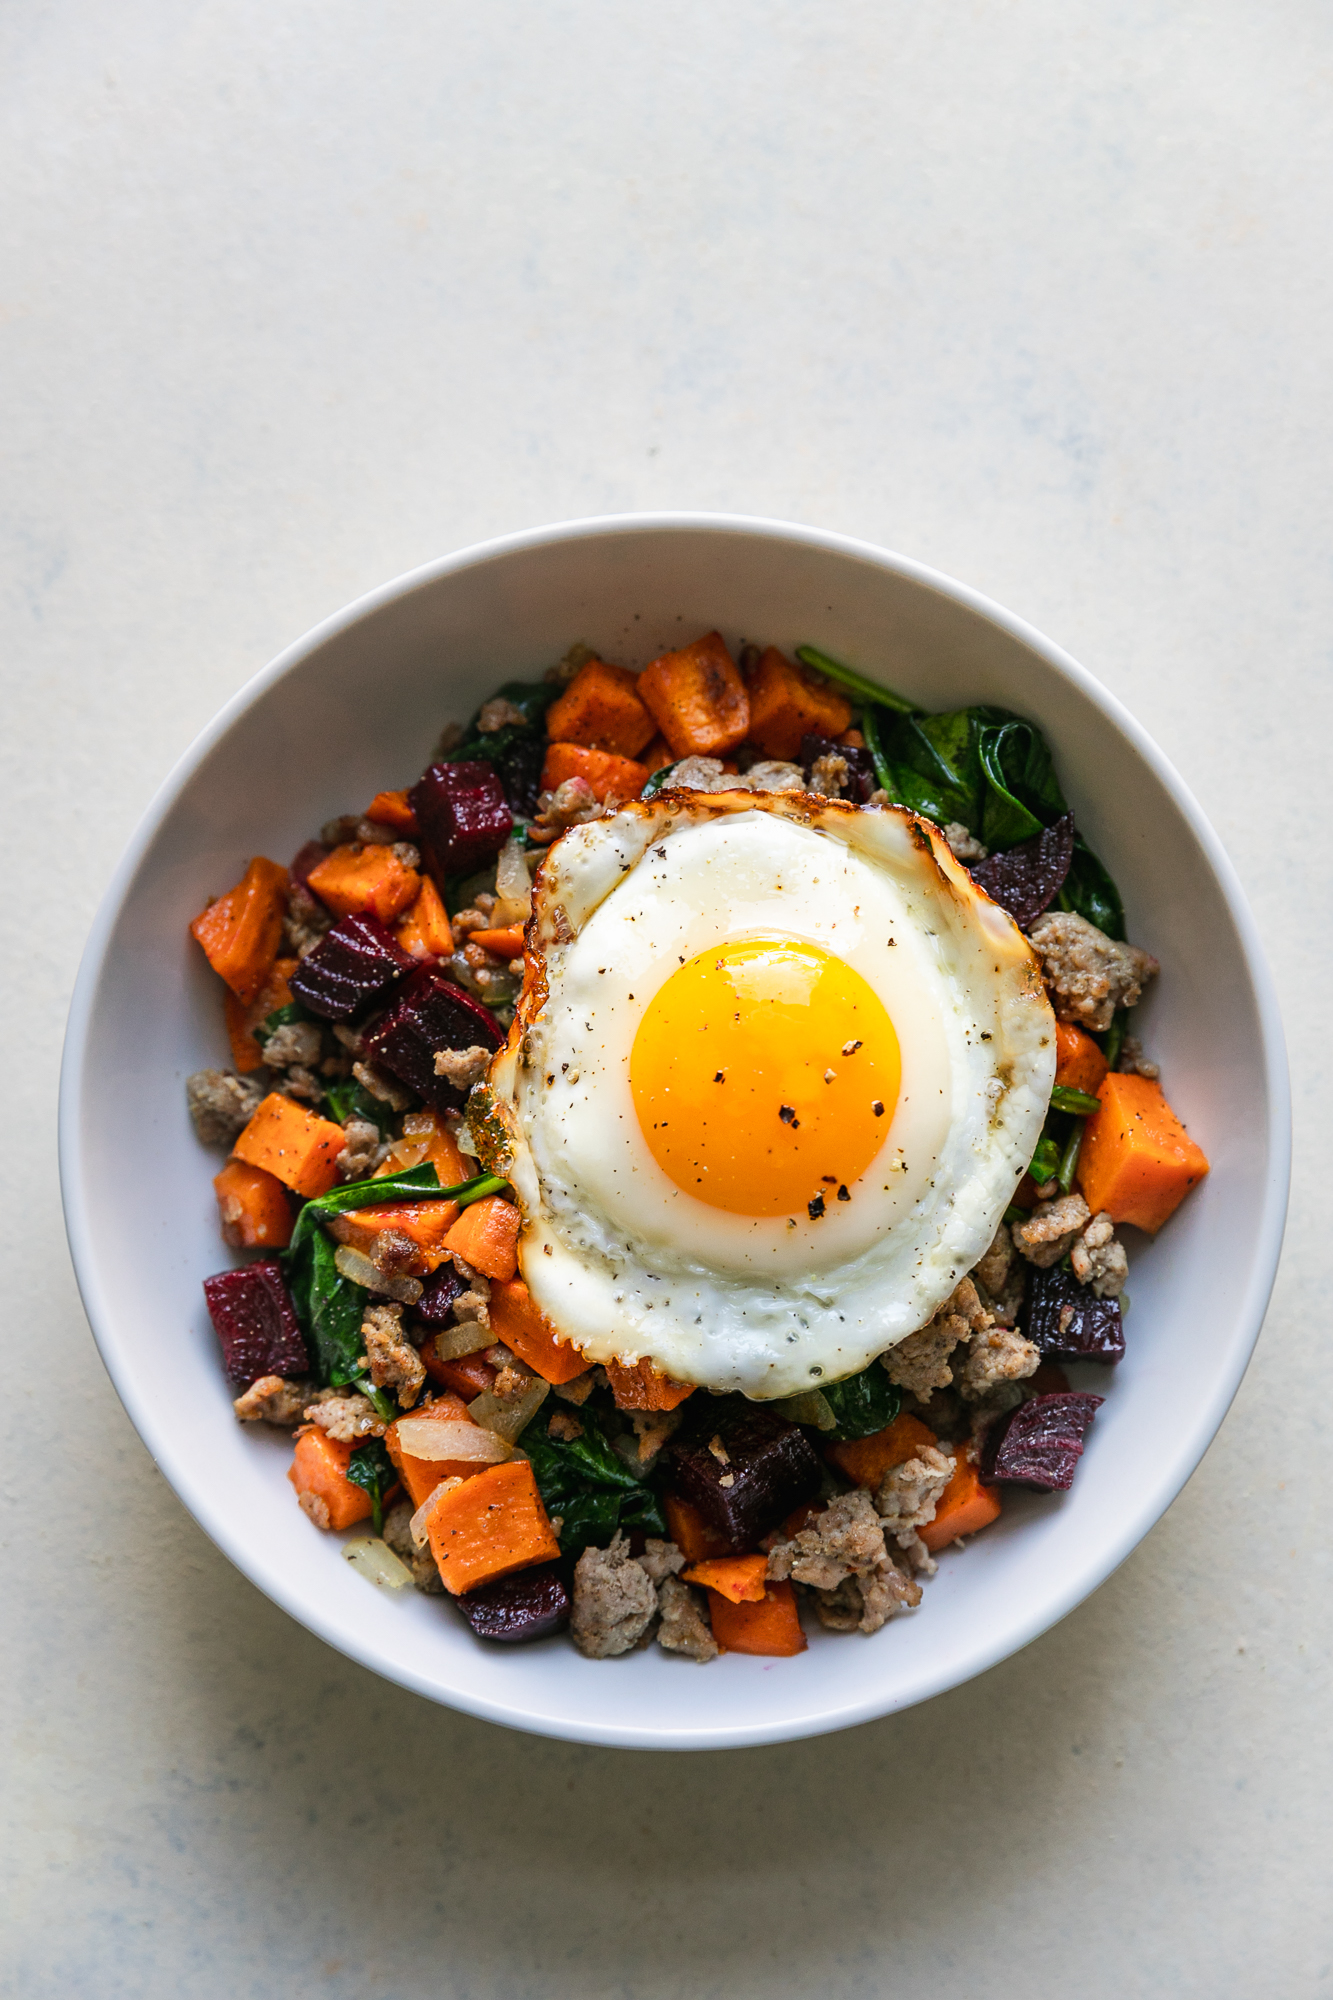 Beet That Hash   Organic Sweet Potatoes, Organic Beets, Pastured Pork Breakfast Sausage, Cage Free Eggs, Organic Rainbow Chard, Onions, Apple Cider Vinegar, Olive Oil   Mint Saged the Day Seasoning   Meal $8.95 | Snack $4.95